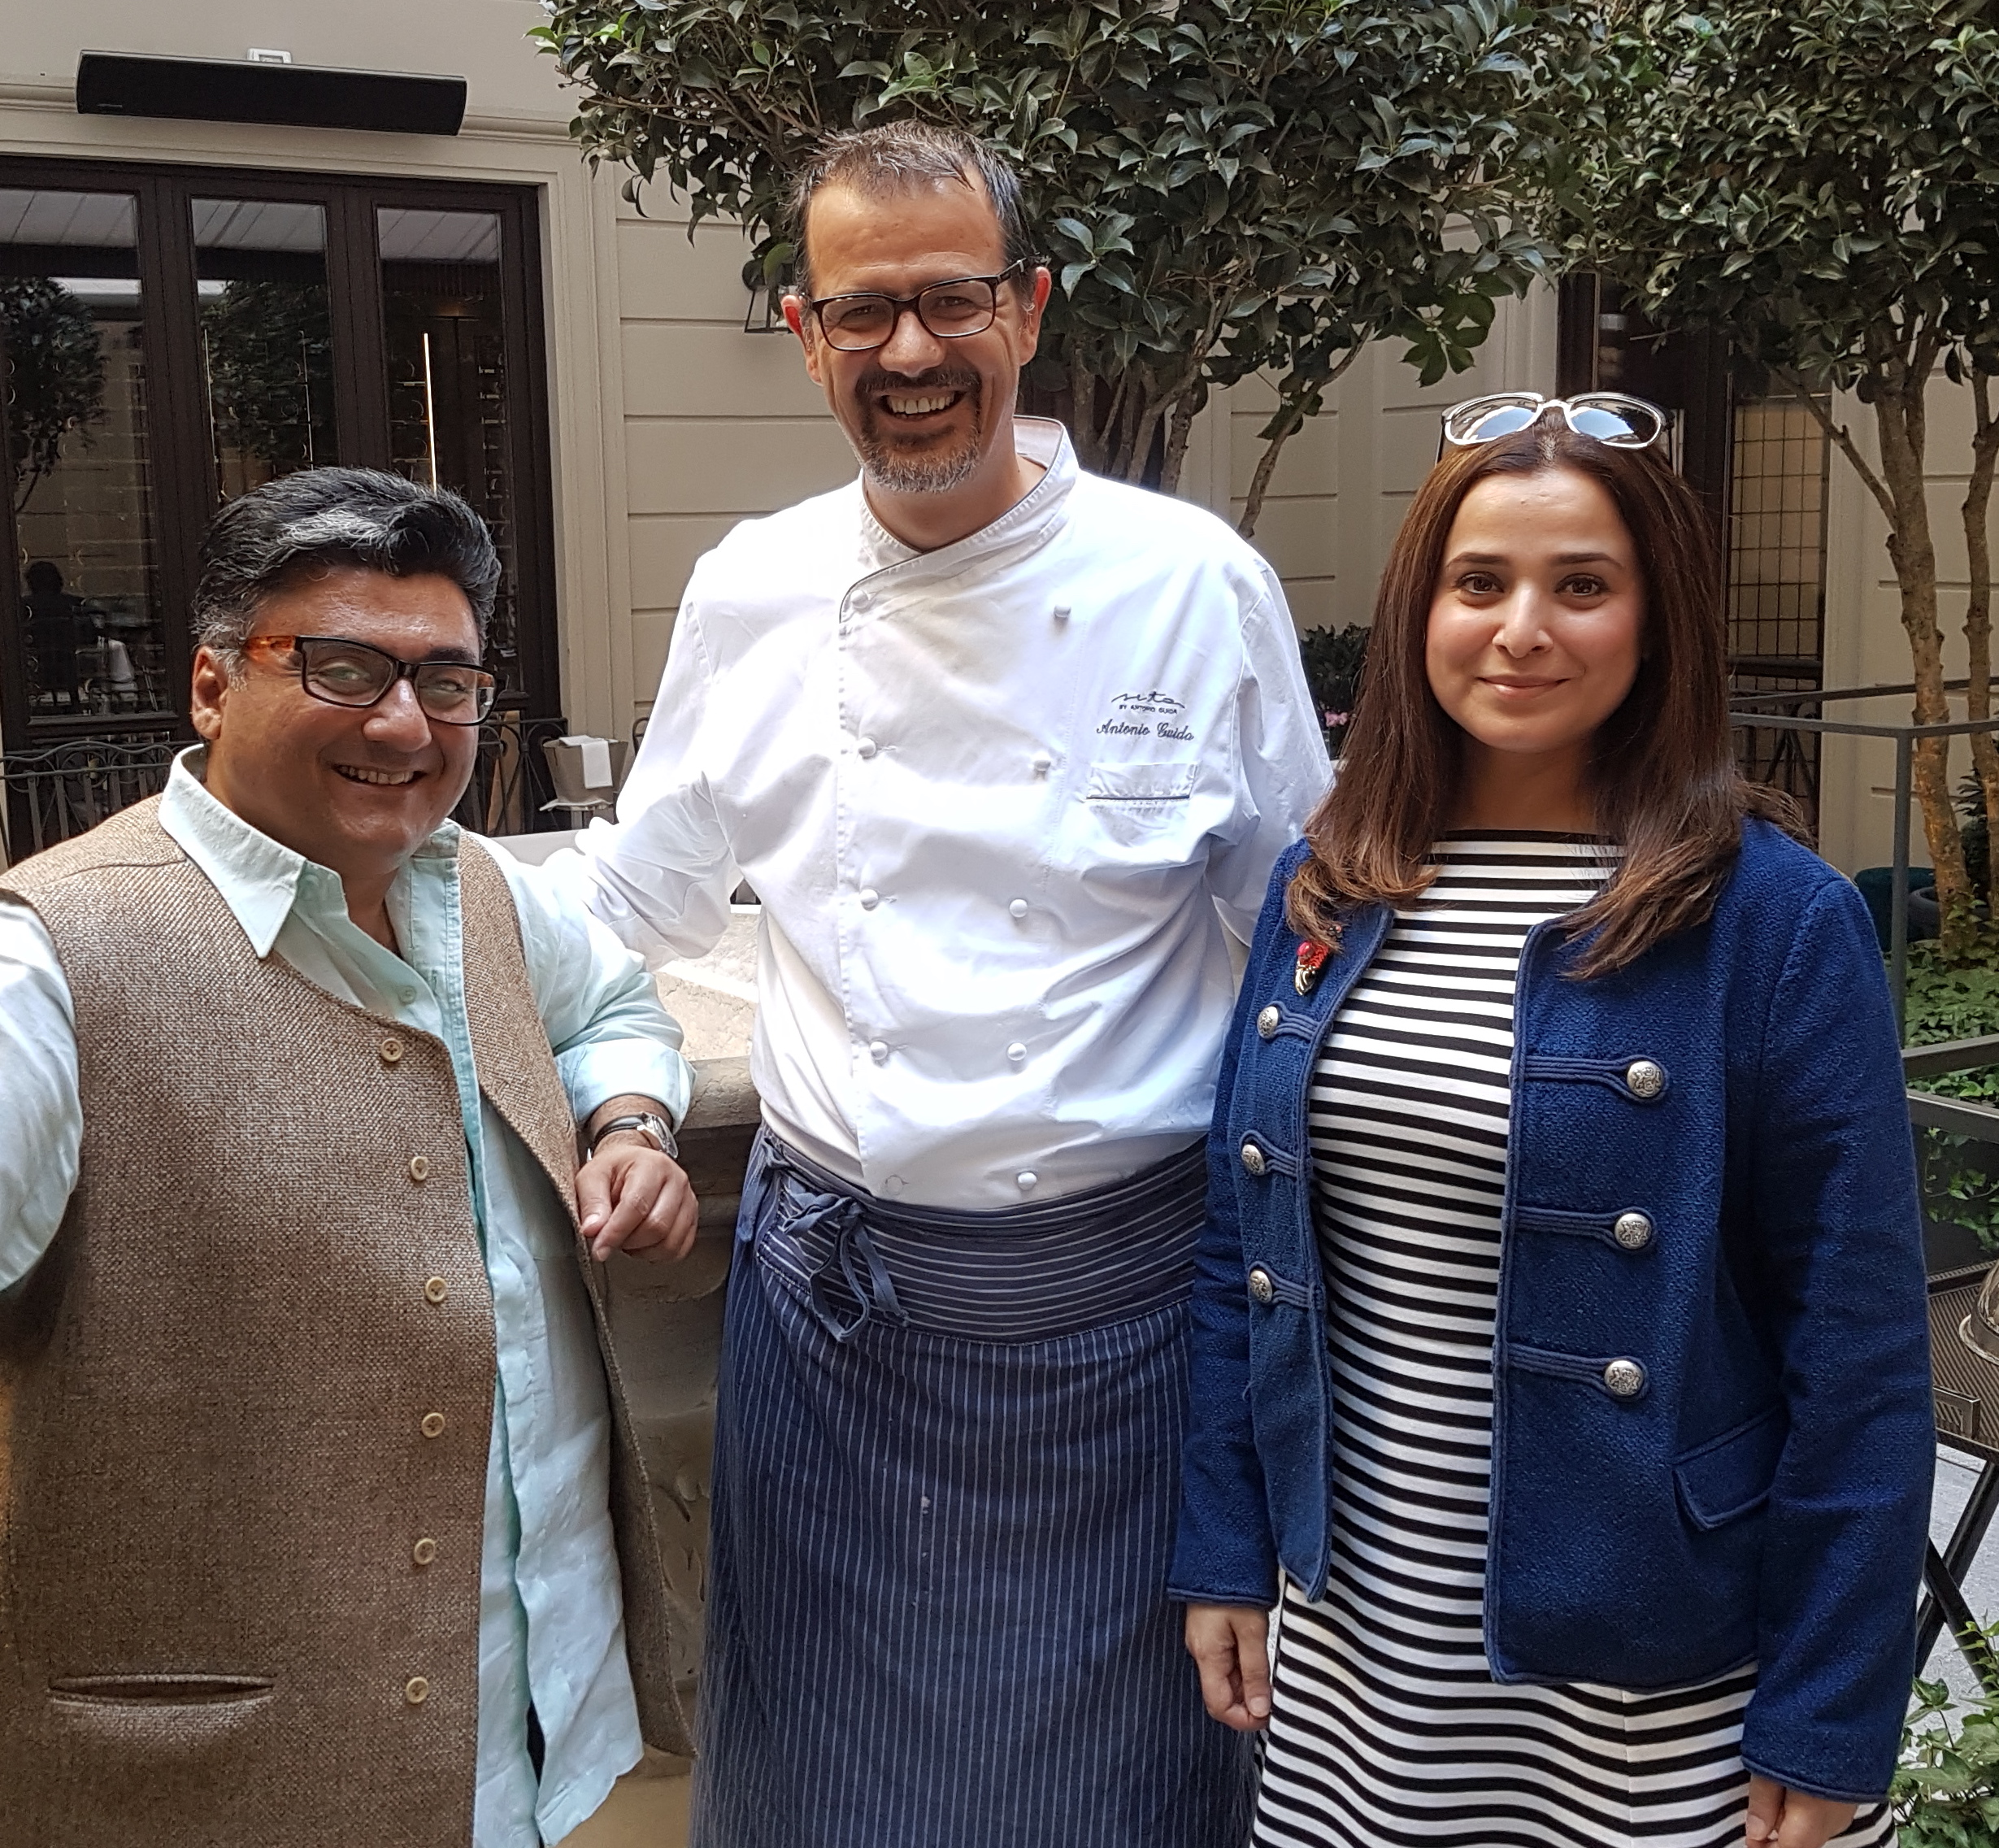 CHEF ANTONIO GUIDA OF SETA with Fahad & Simone